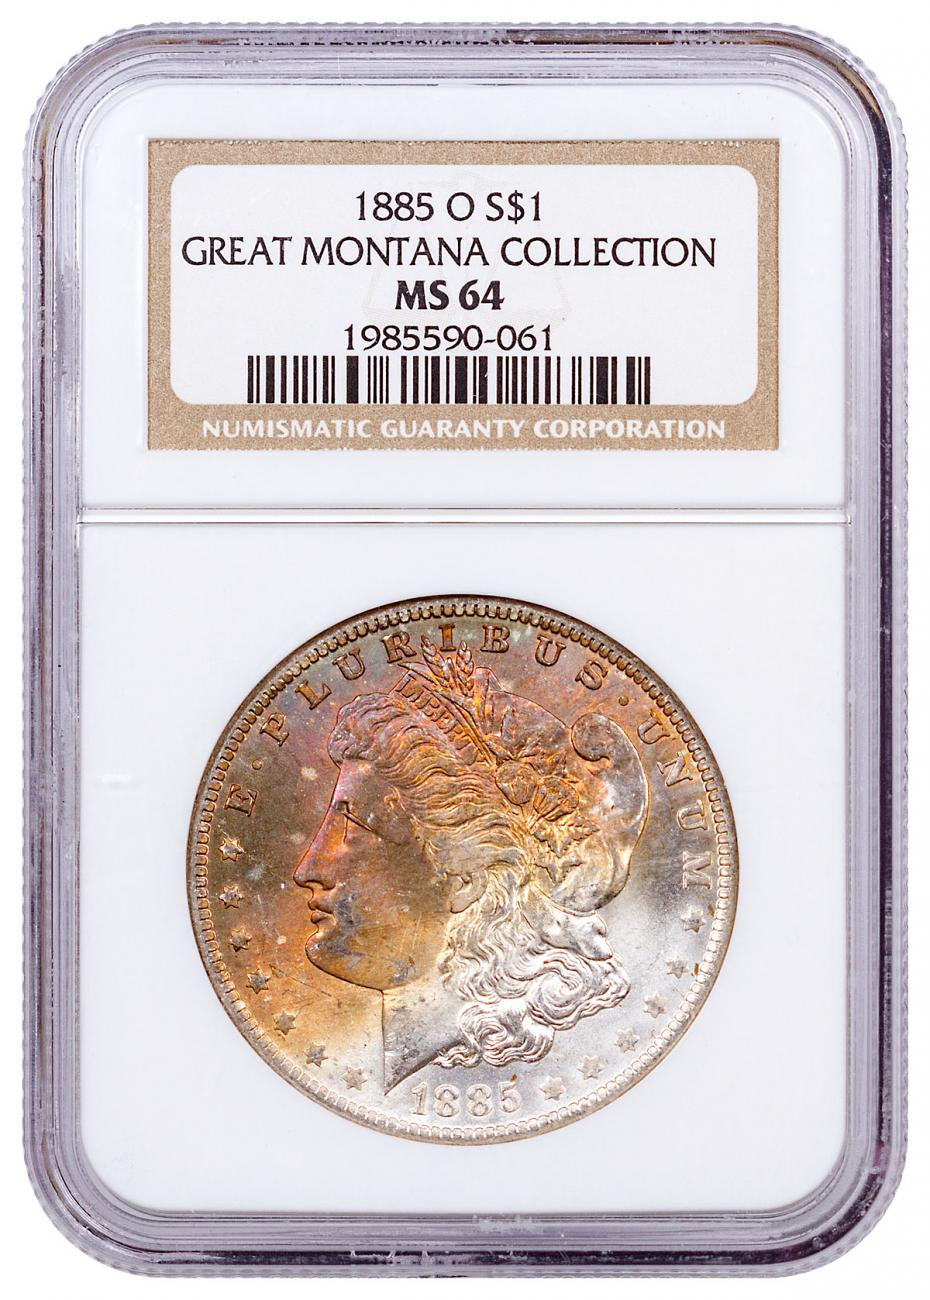 1885-O Silver Morgan Dollar From the Great Montana Collection NGC MS64 Toned CPCR 0061